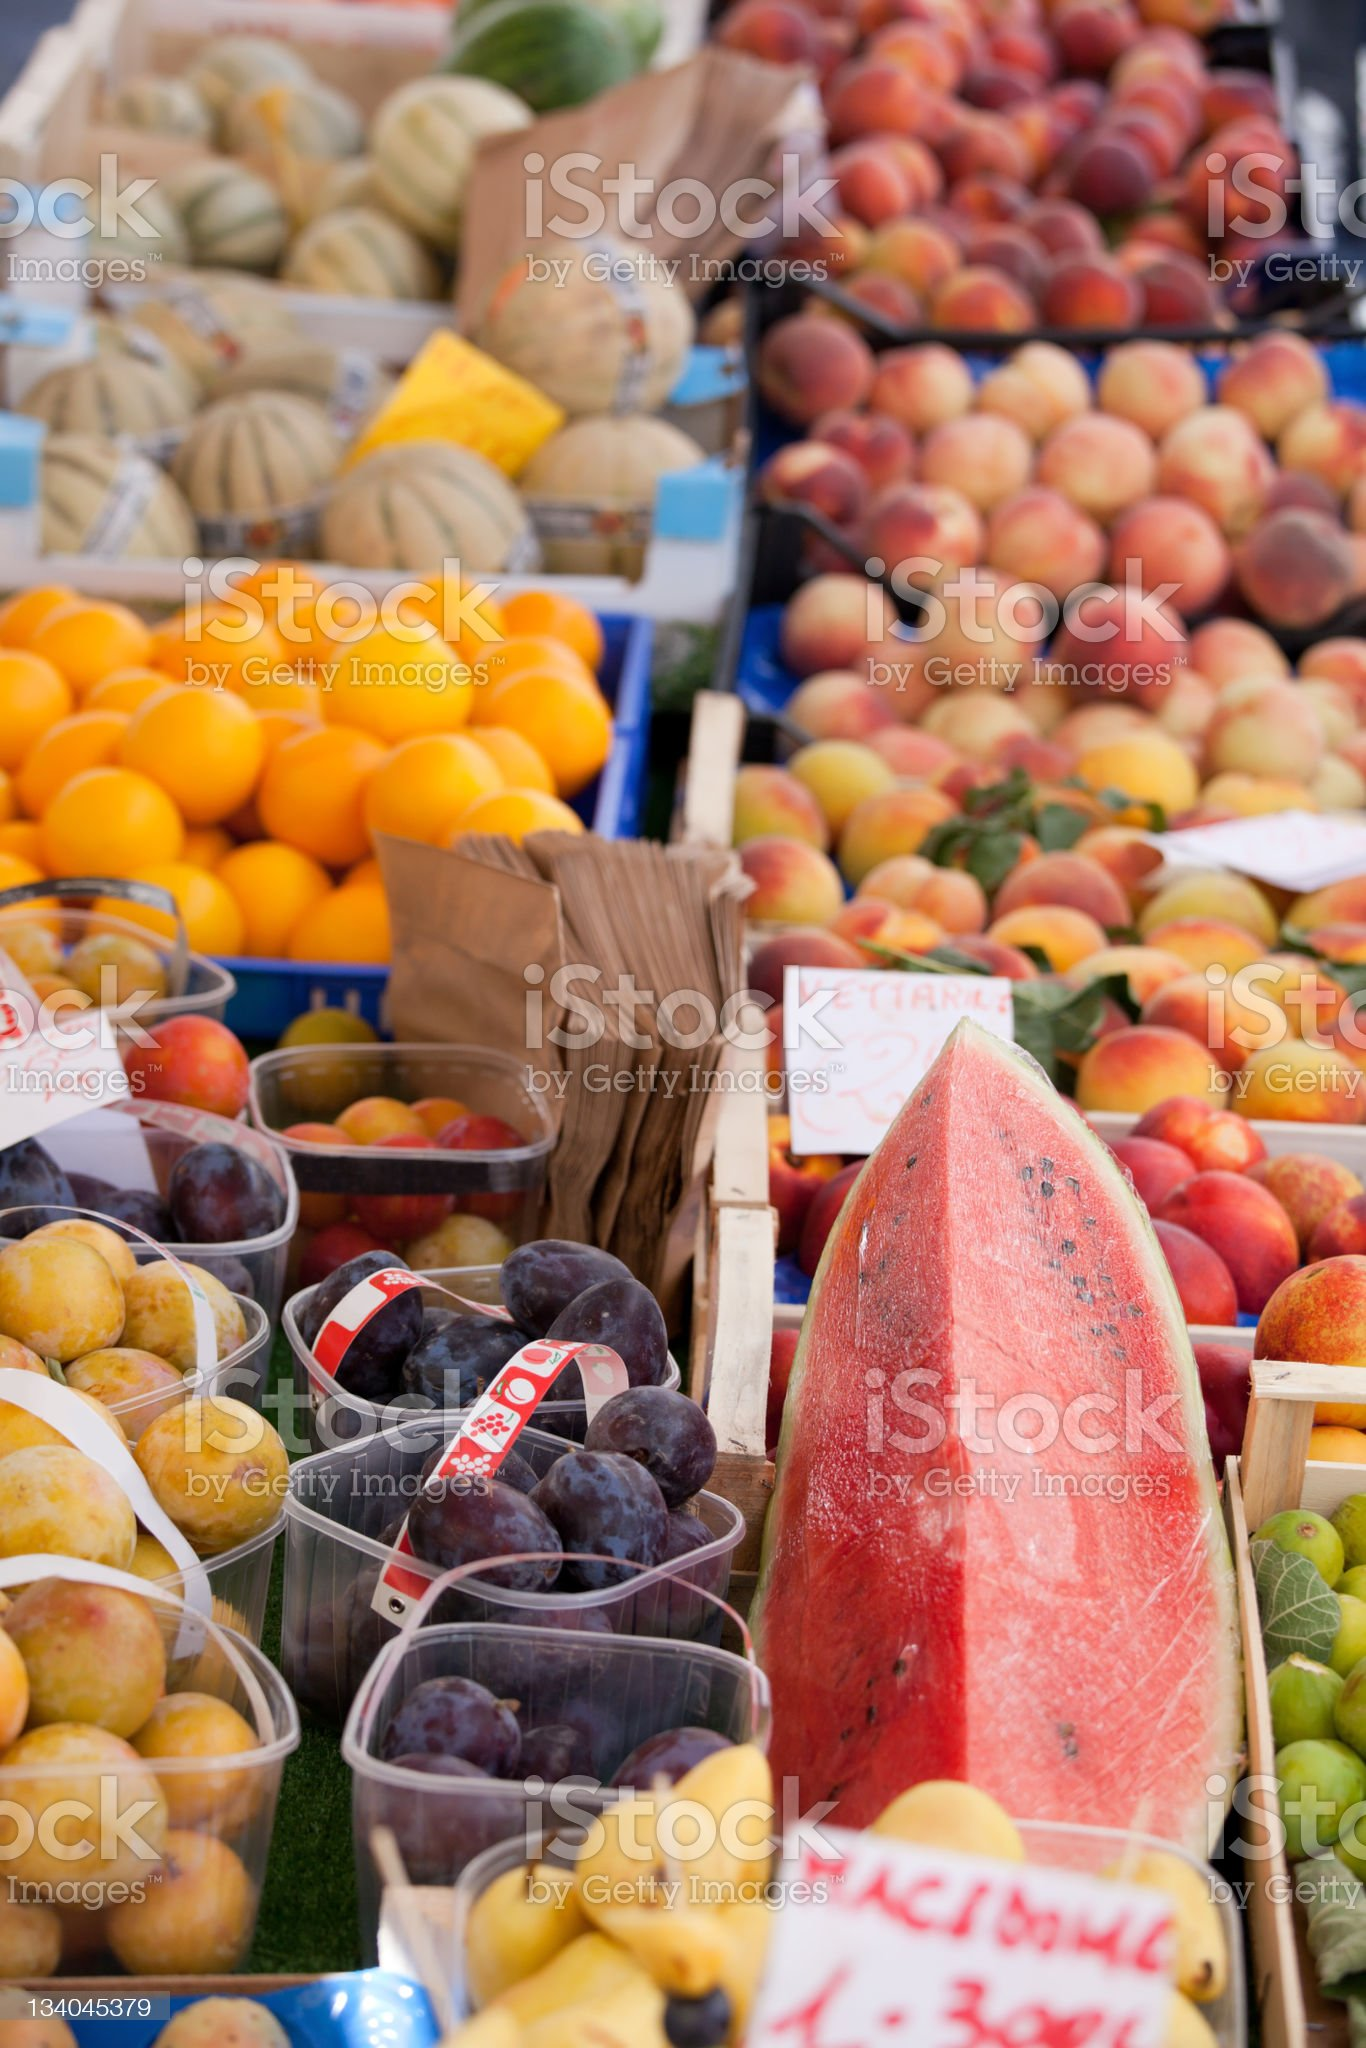 Fresh raw fruits in baskets, boxes at street market close-up royalty-free stock photo